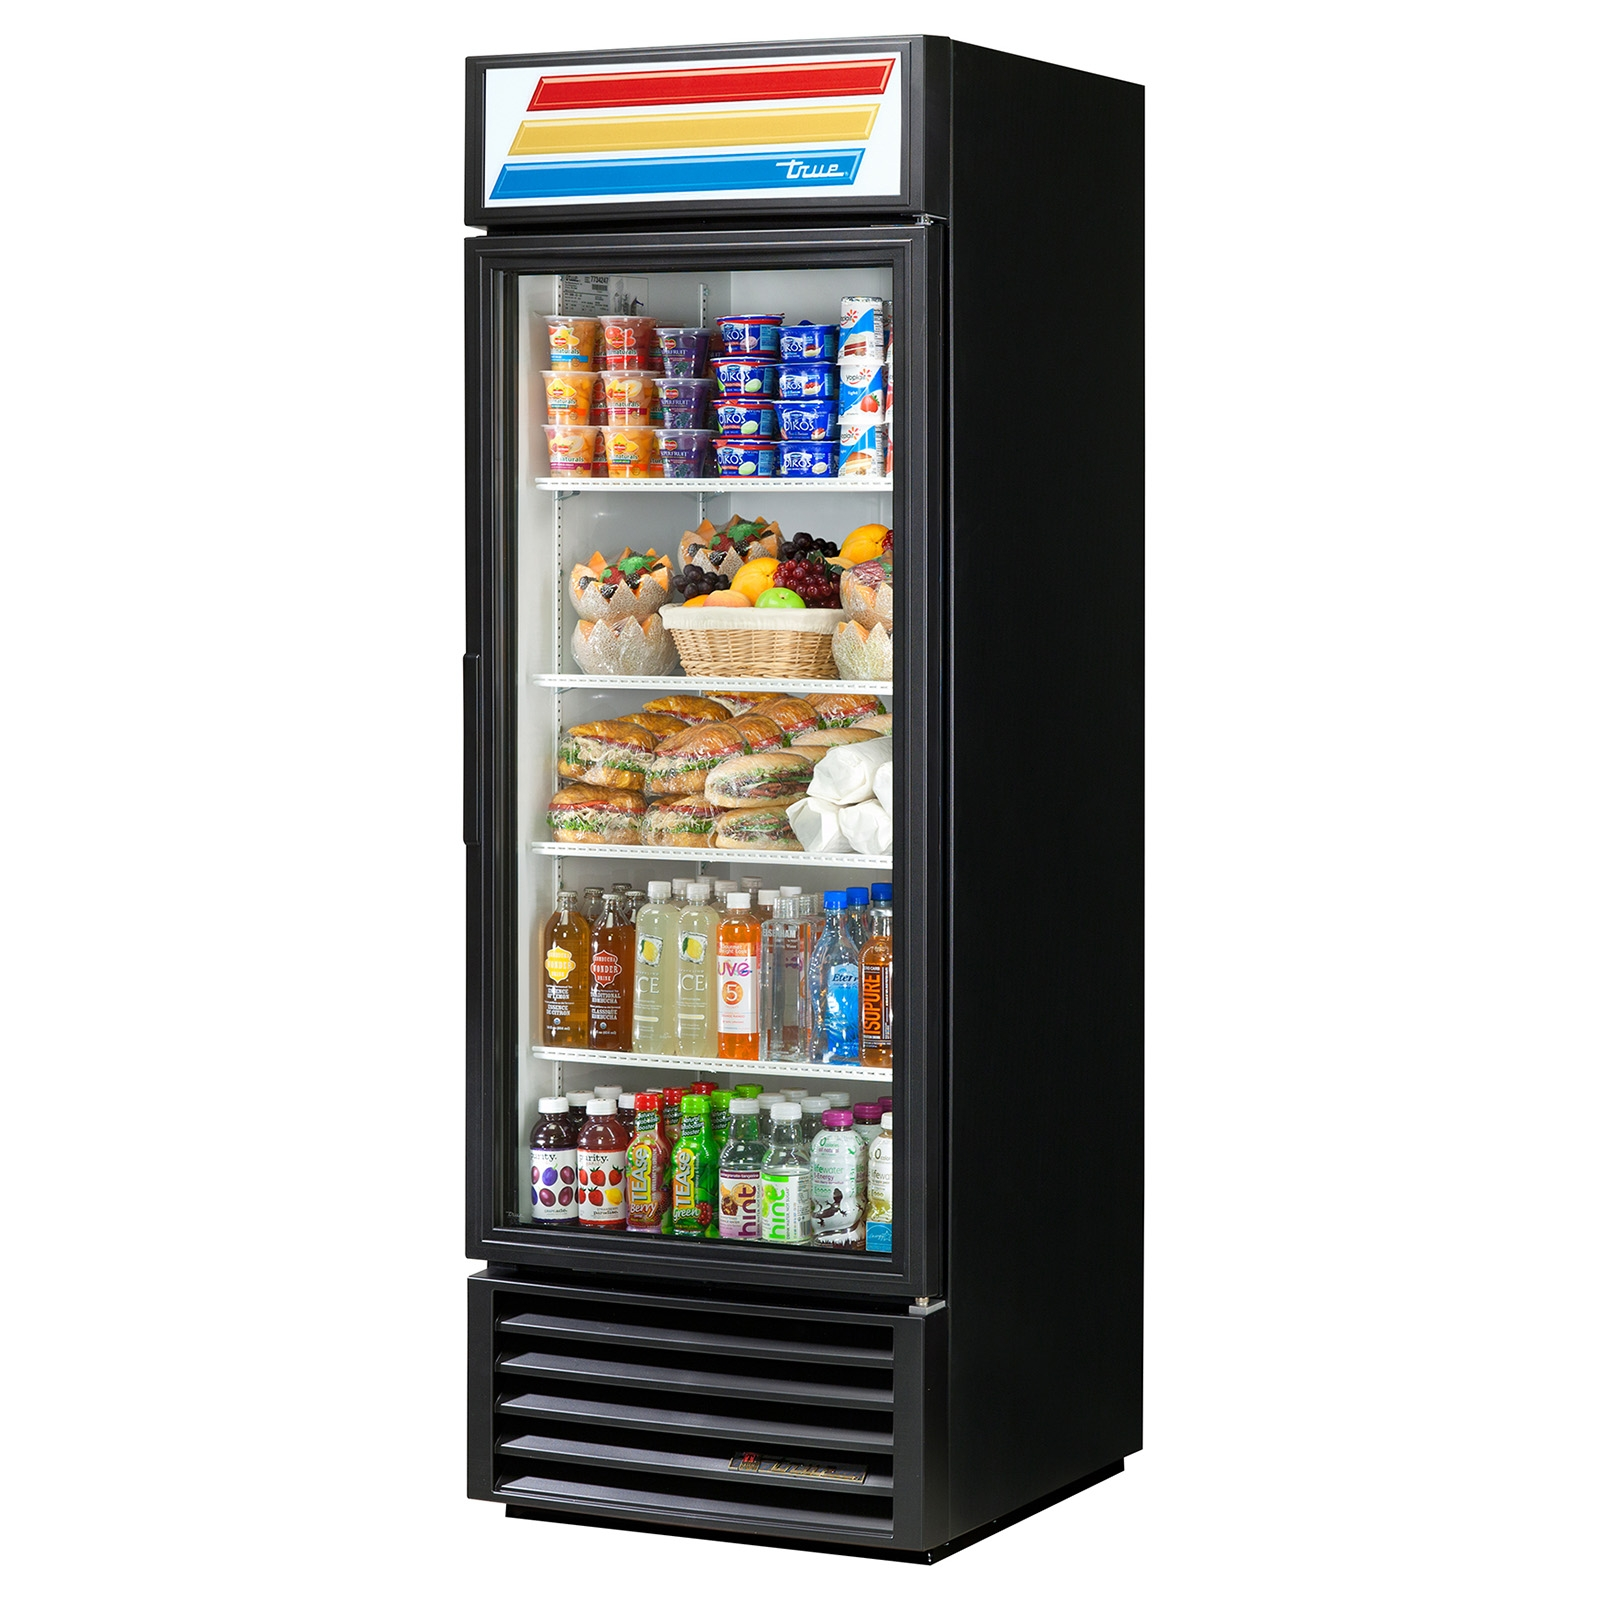 GDM-23-LD – True Display Refrigerator